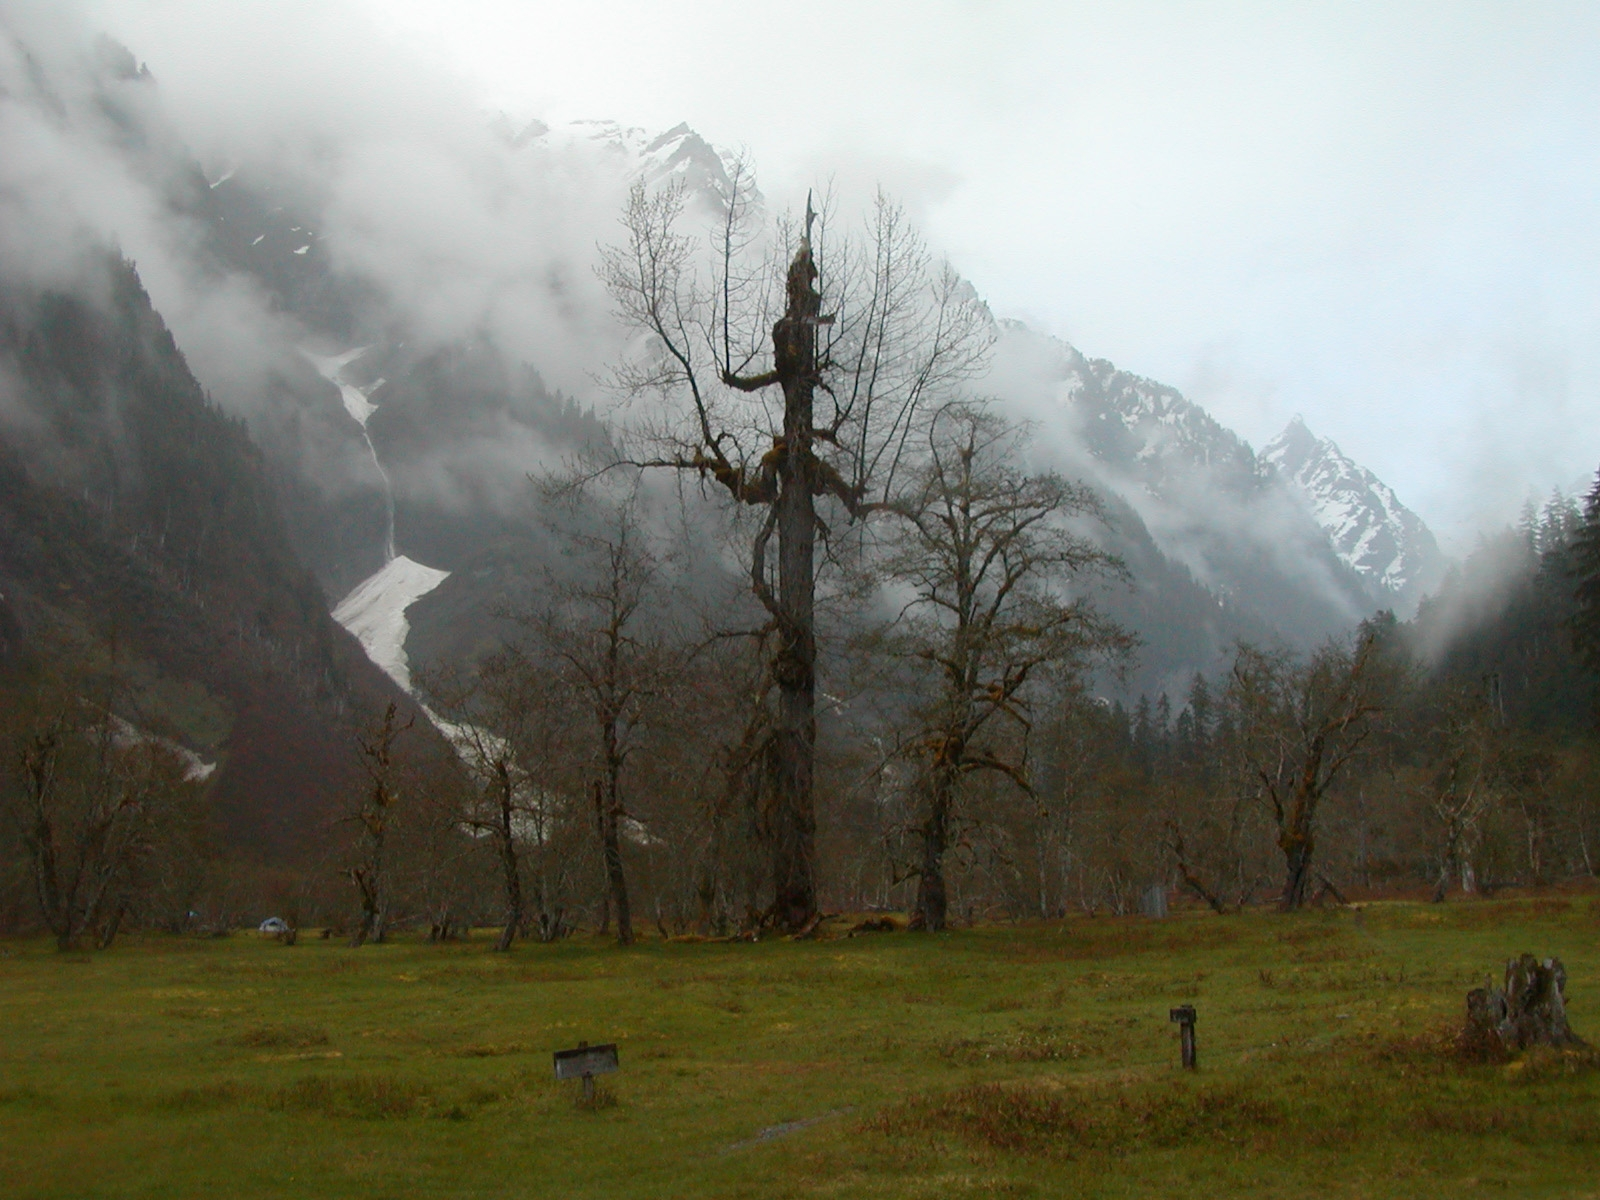 Caption: www.cafechill.org, Credit: Olympic National Park, National Park Service, 2010, public domain.